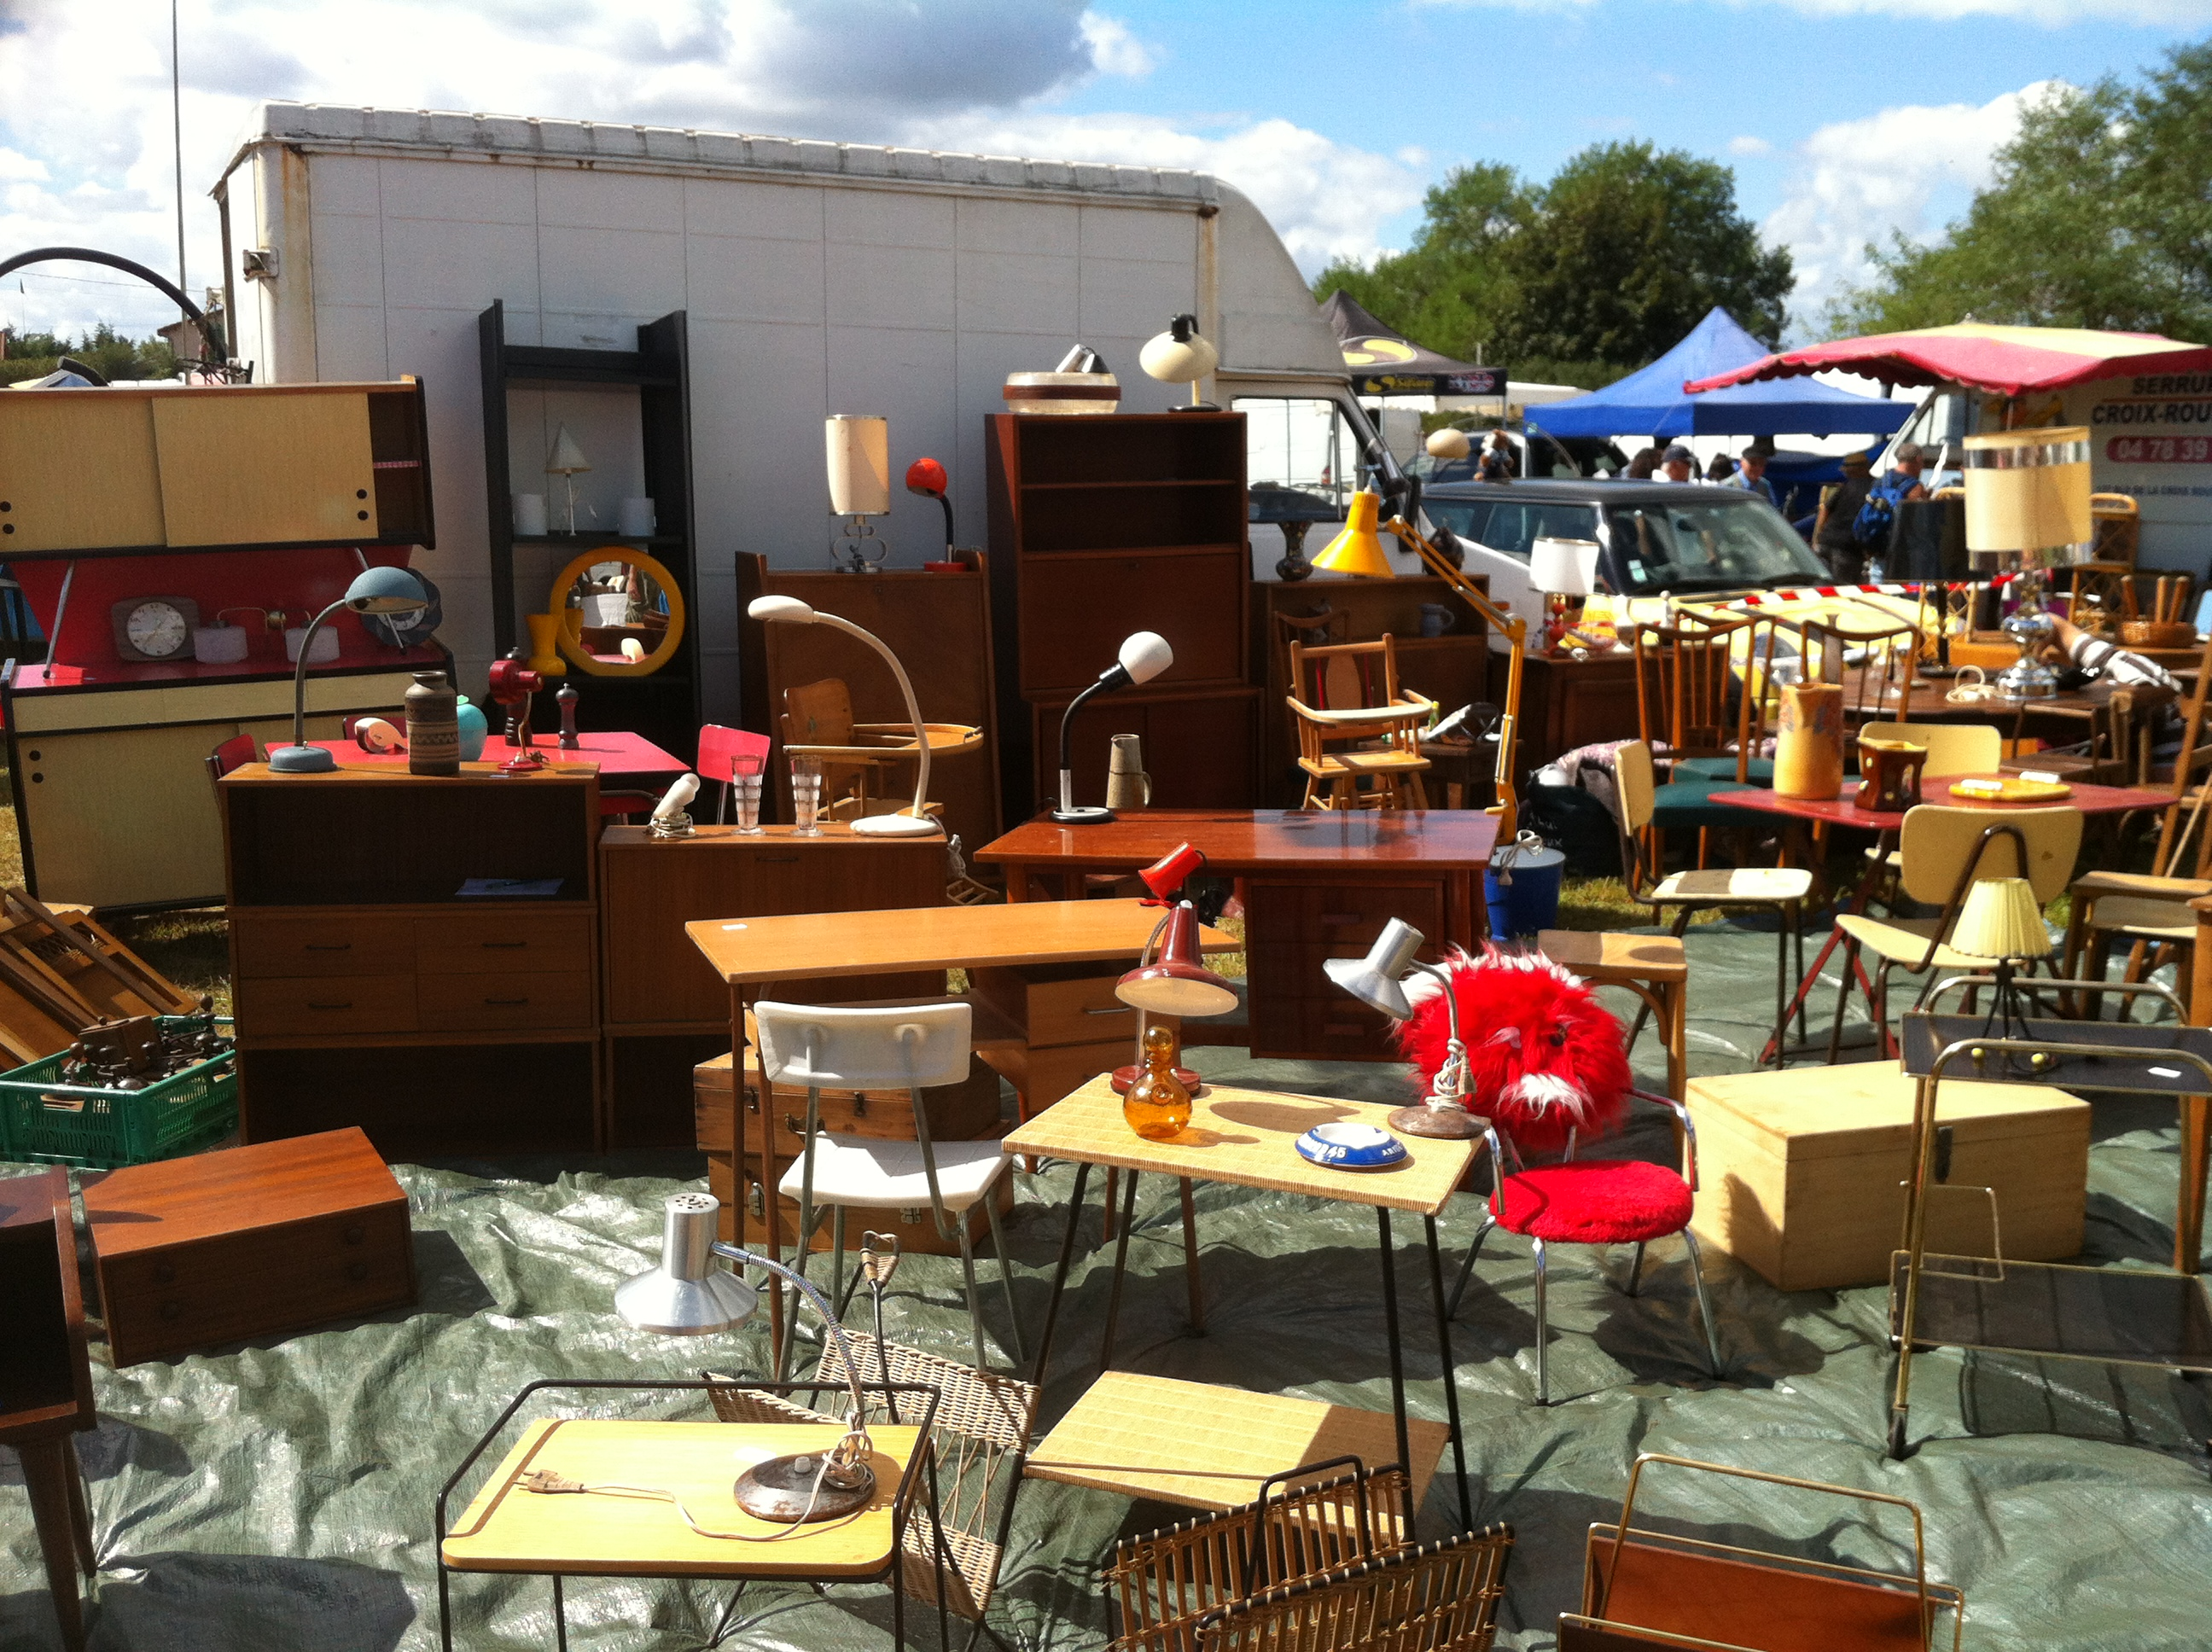 brocante vide grenier. Black Bedroom Furniture Sets. Home Design Ideas